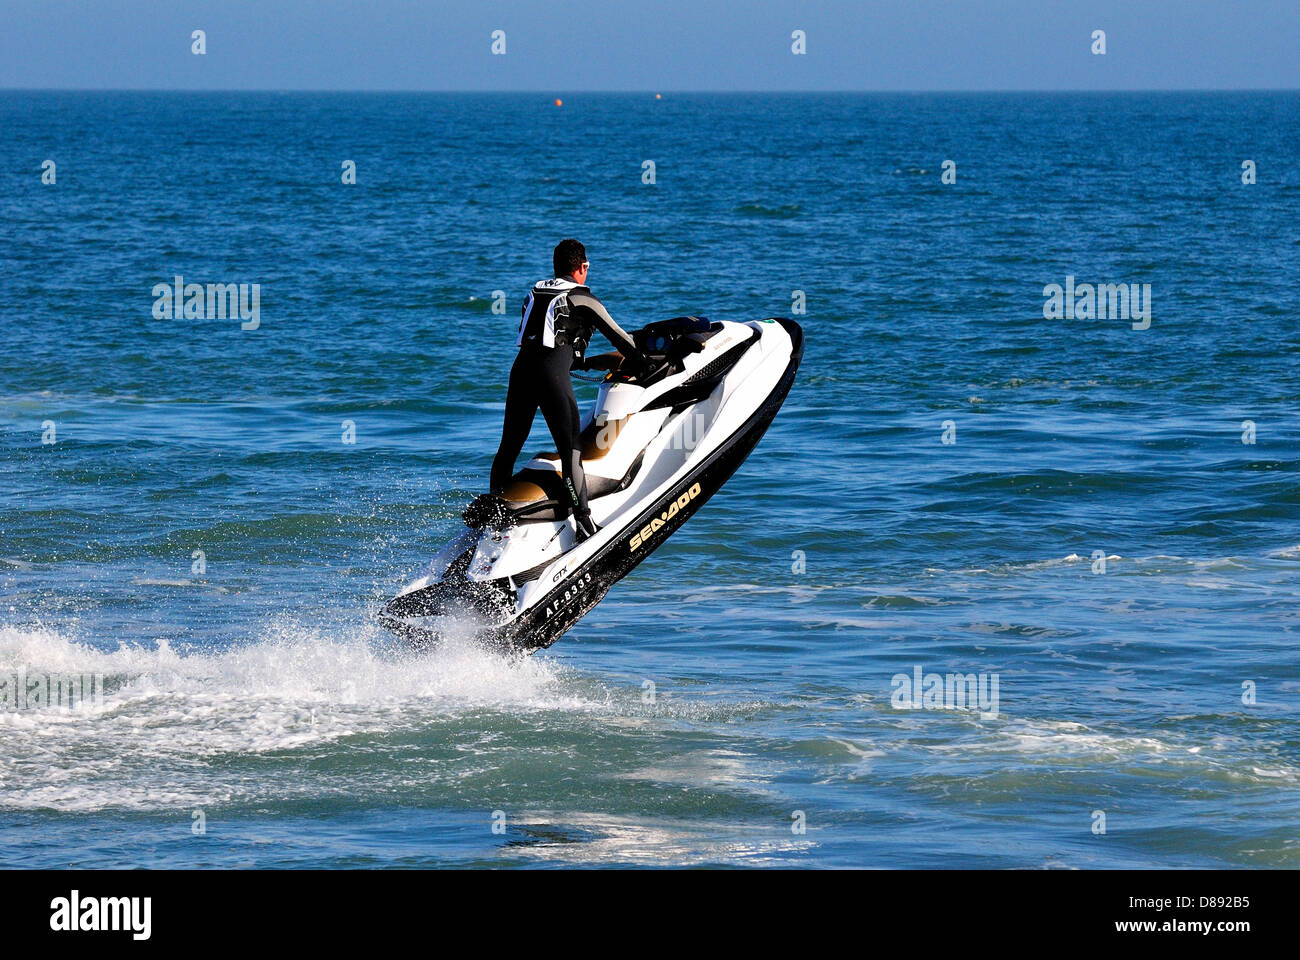 man-riding-a-jetski-dorset-england-uk-D892B5.jpg